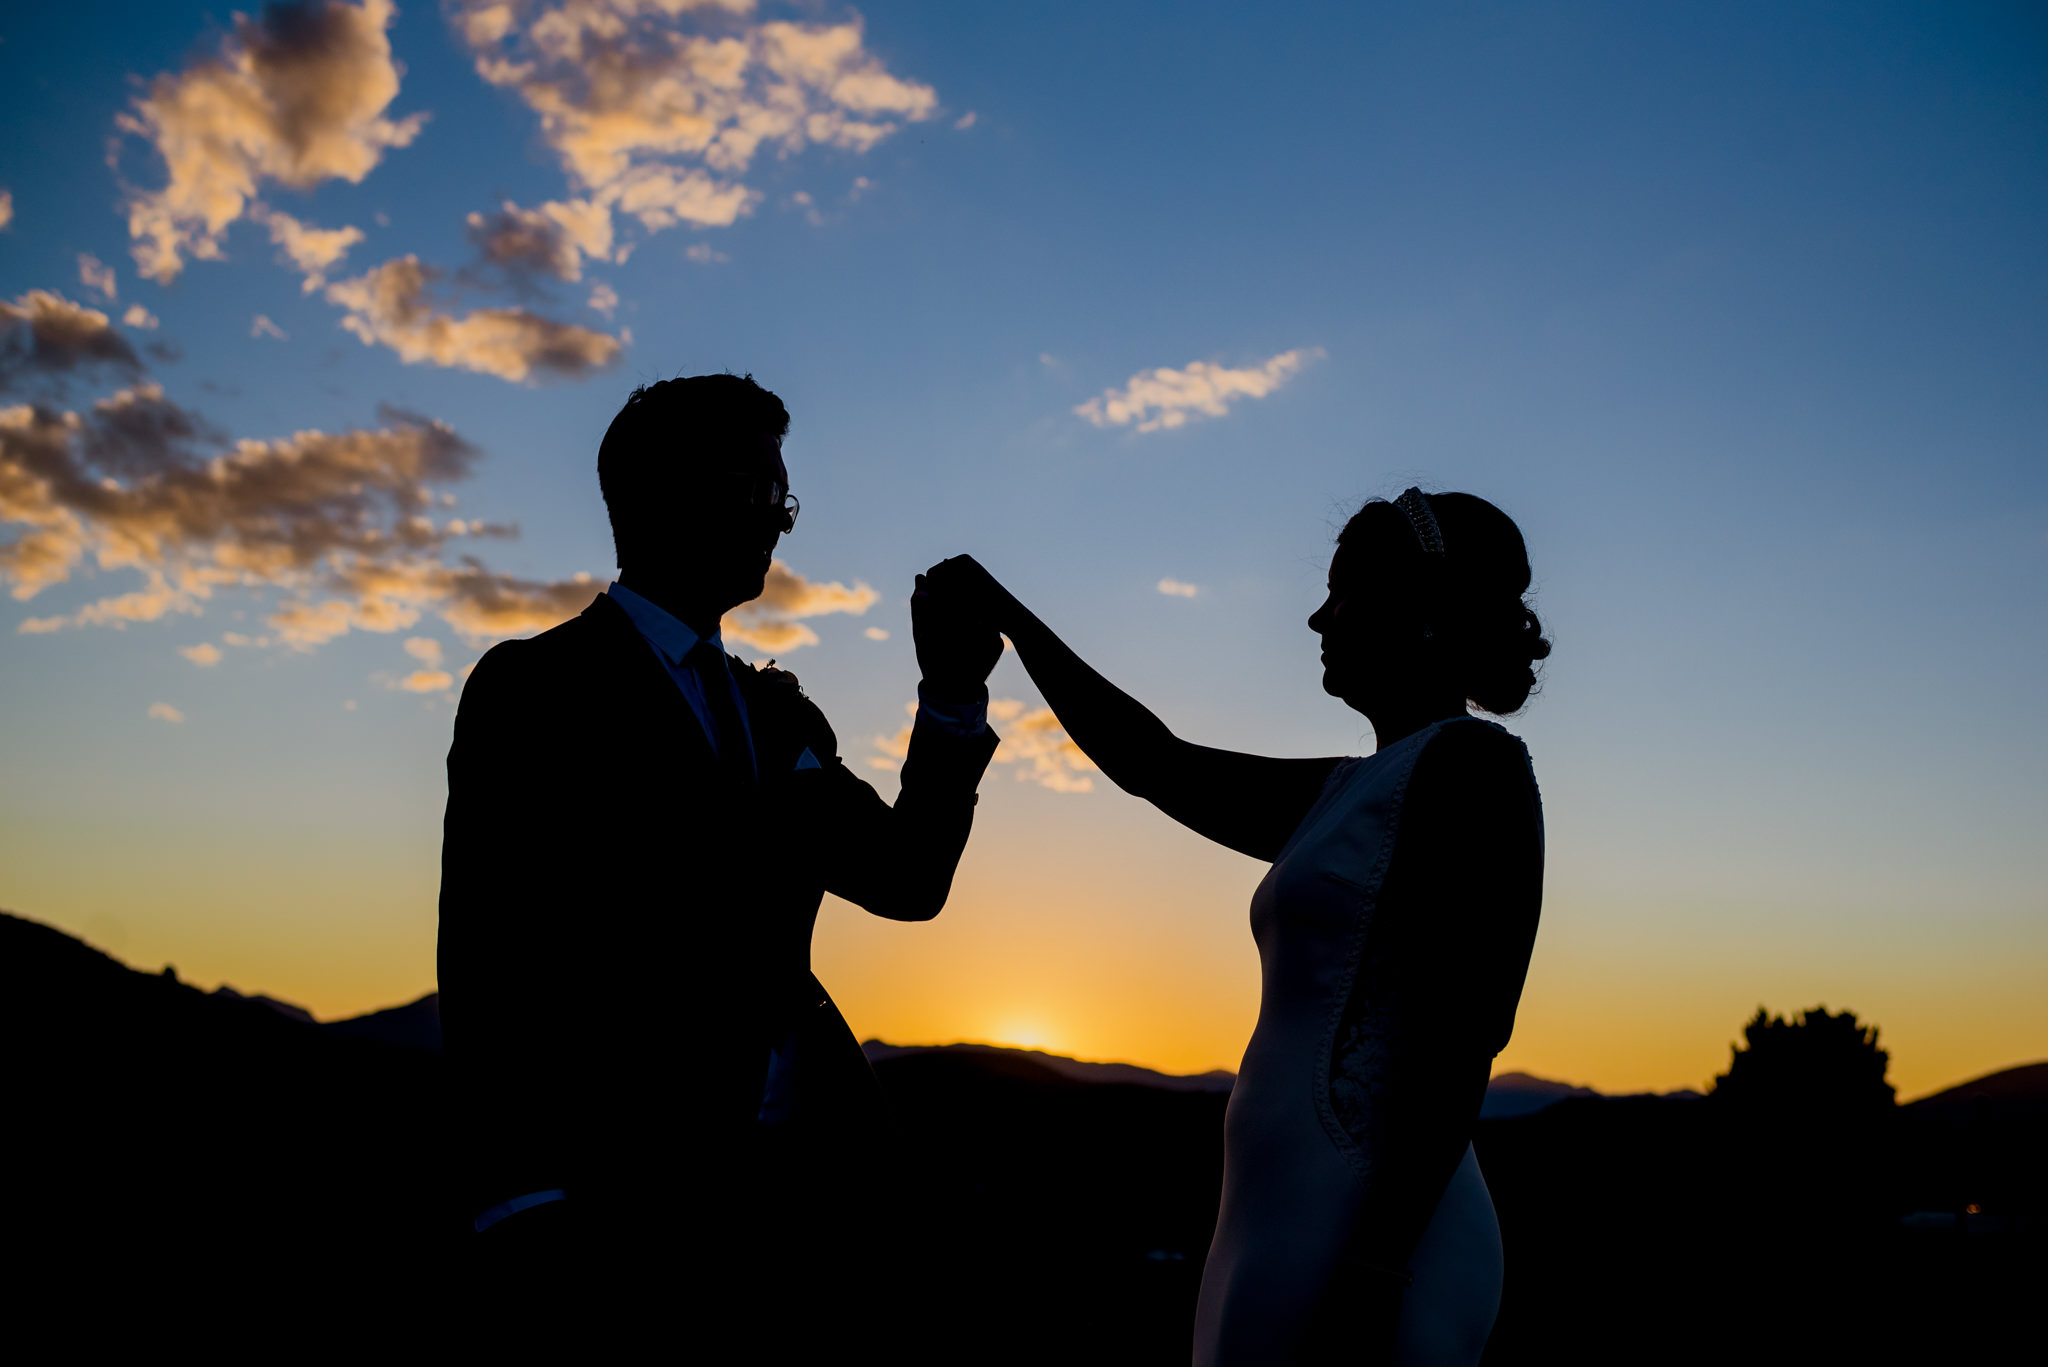 Silhouette of a man and woman holding hands in front of the afternoon sky